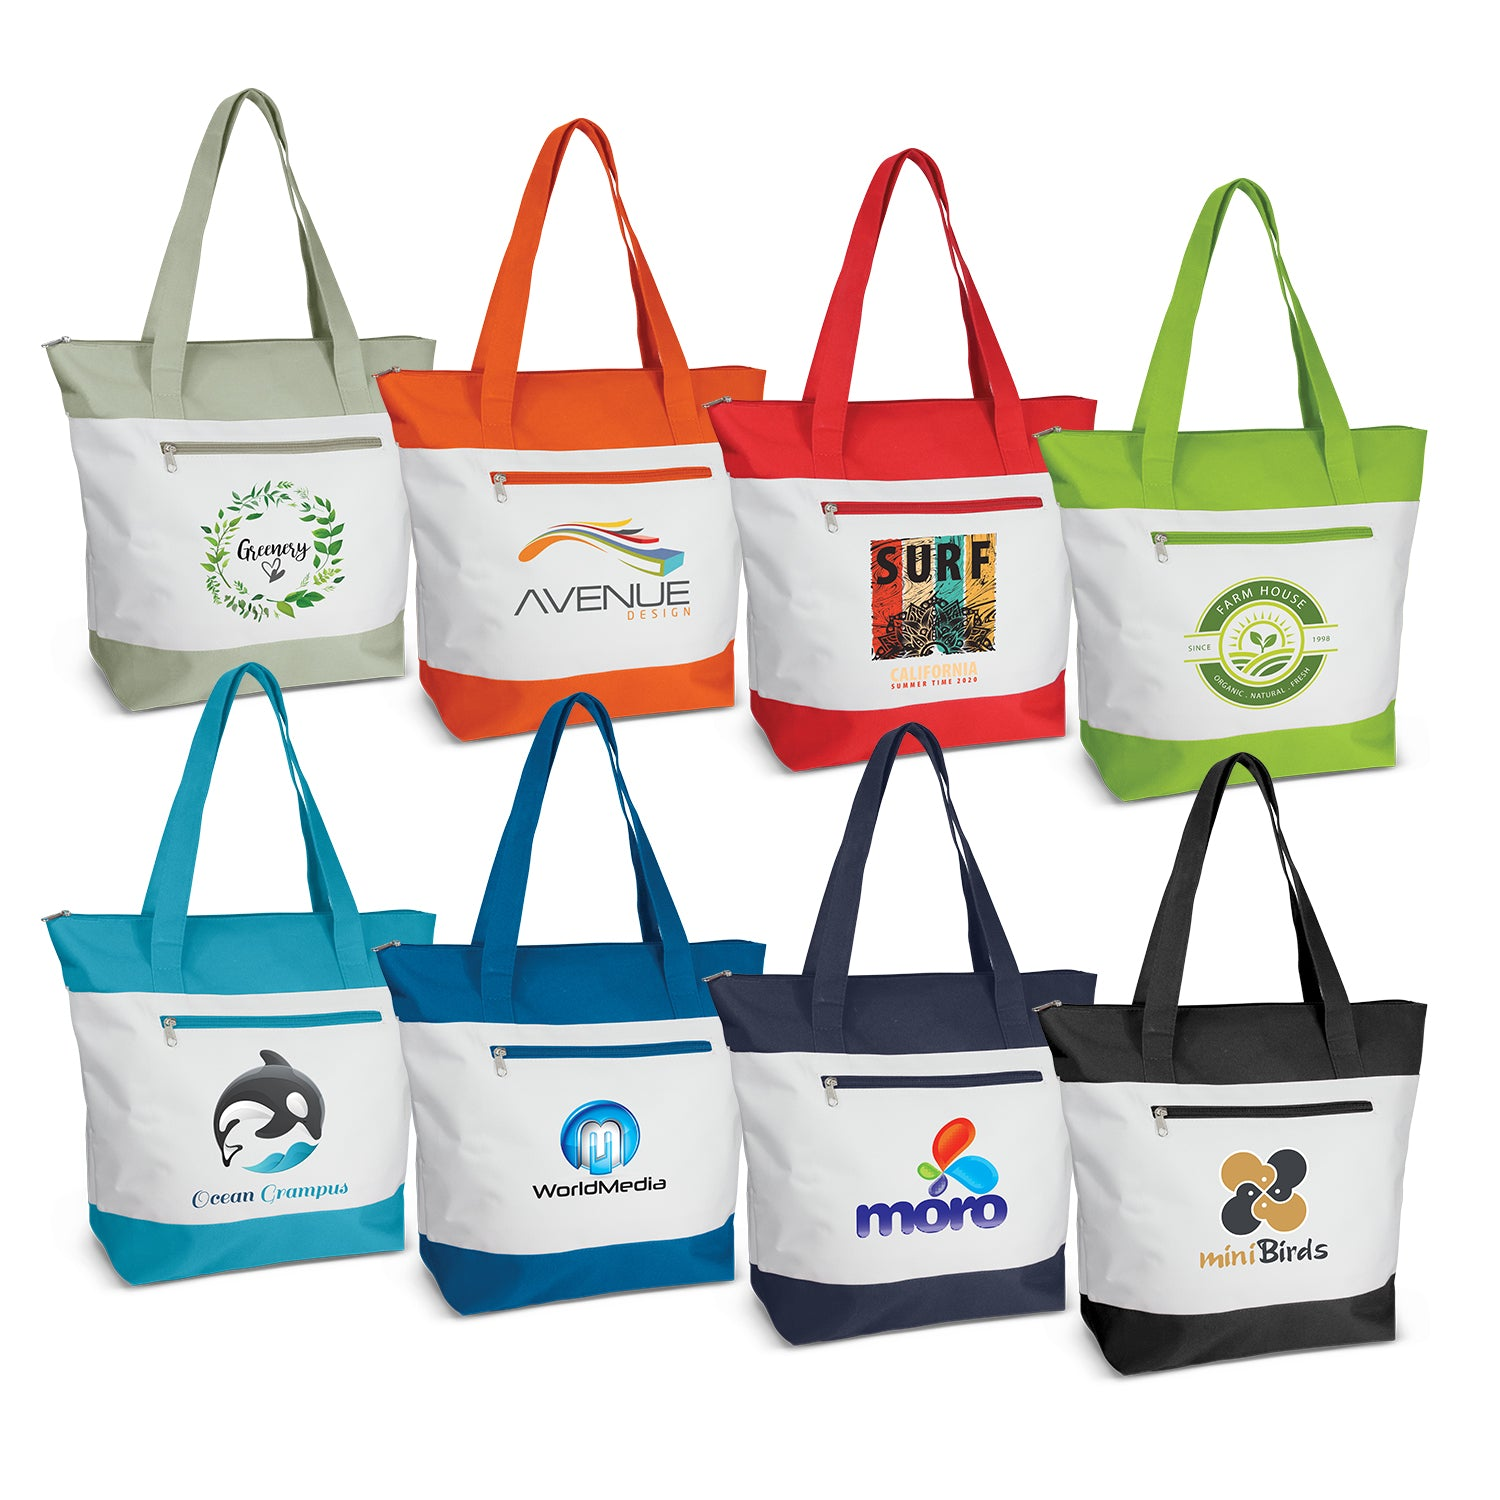 Stock Two Tone Nylon Tote(SNB-89T) - greenpac.com.au